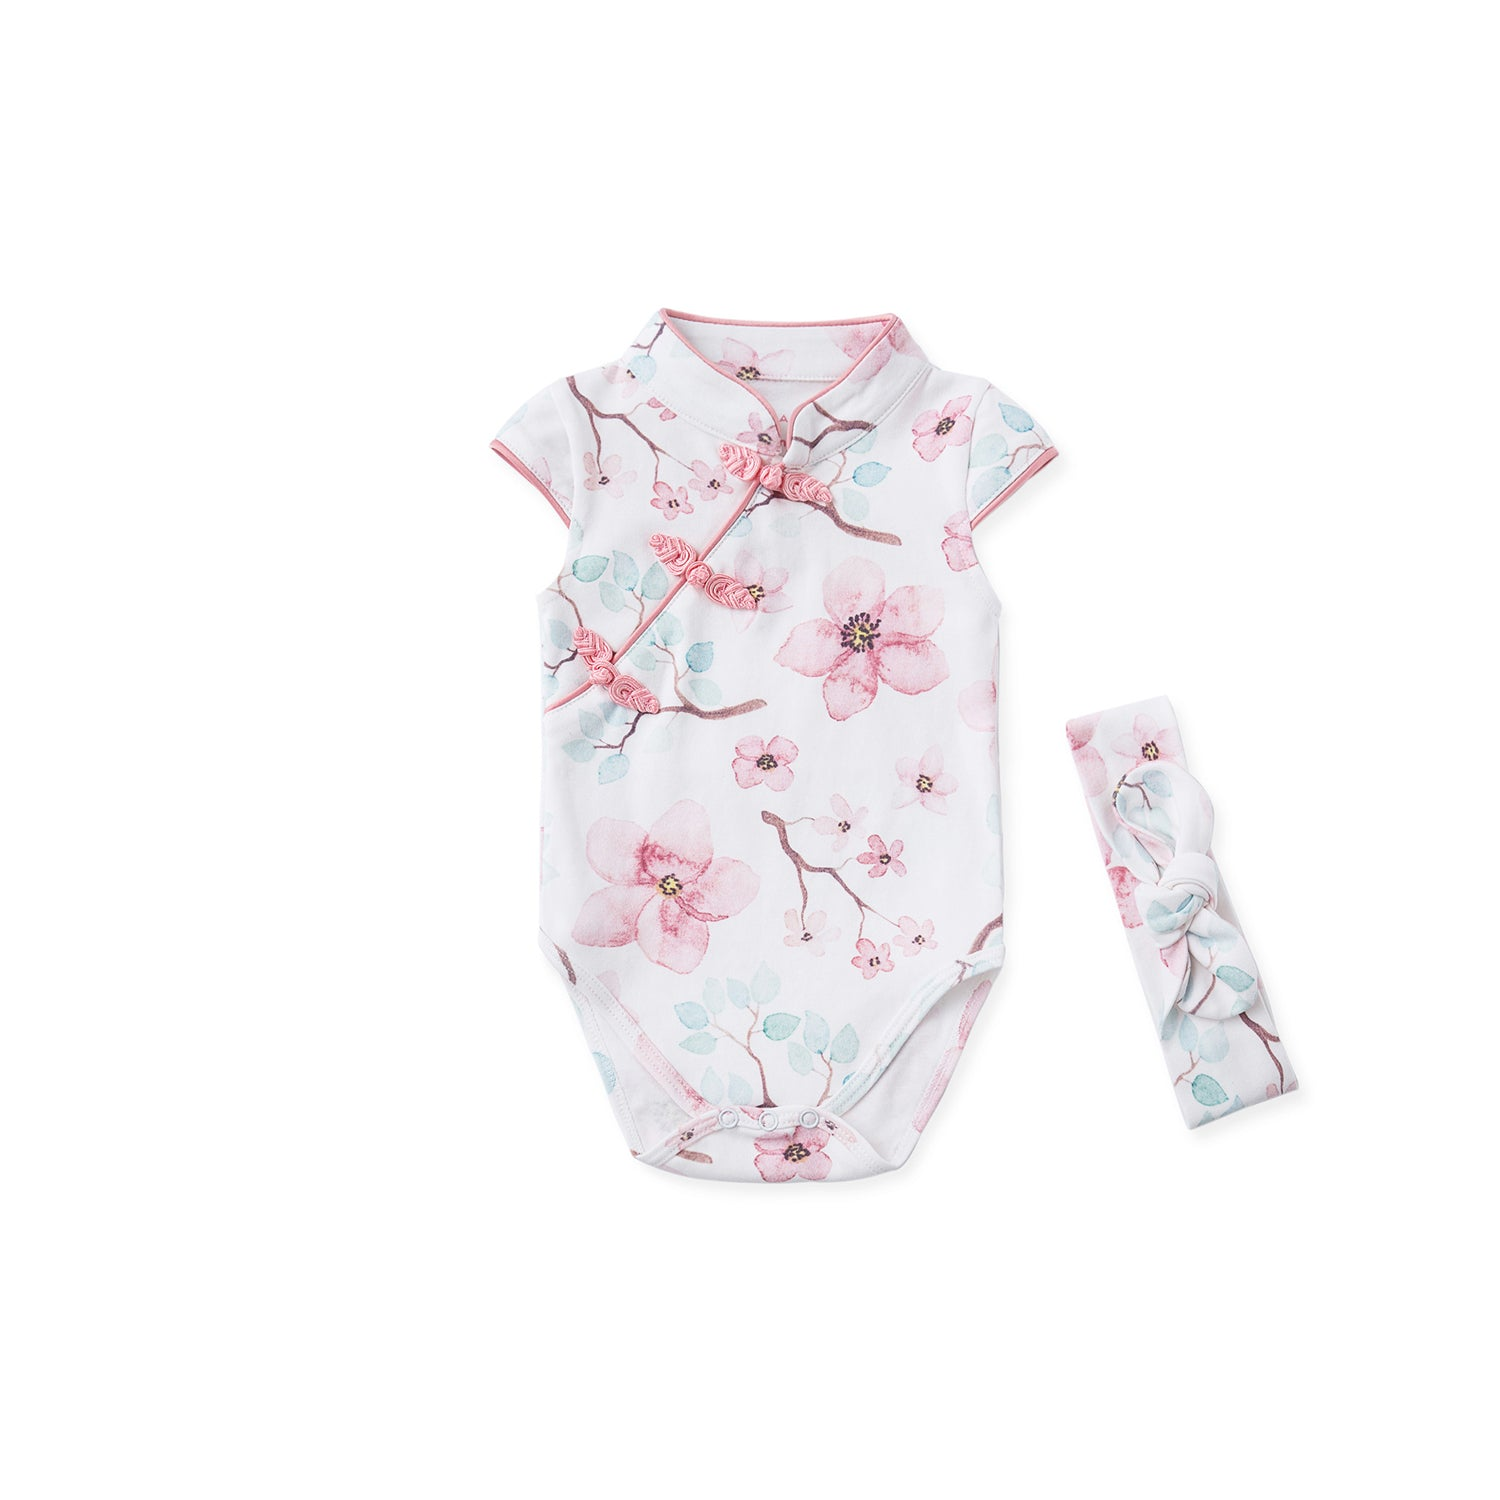 8e15bdc16 Classic Baby Cheongsam - Floral – KIDSCRAFTER